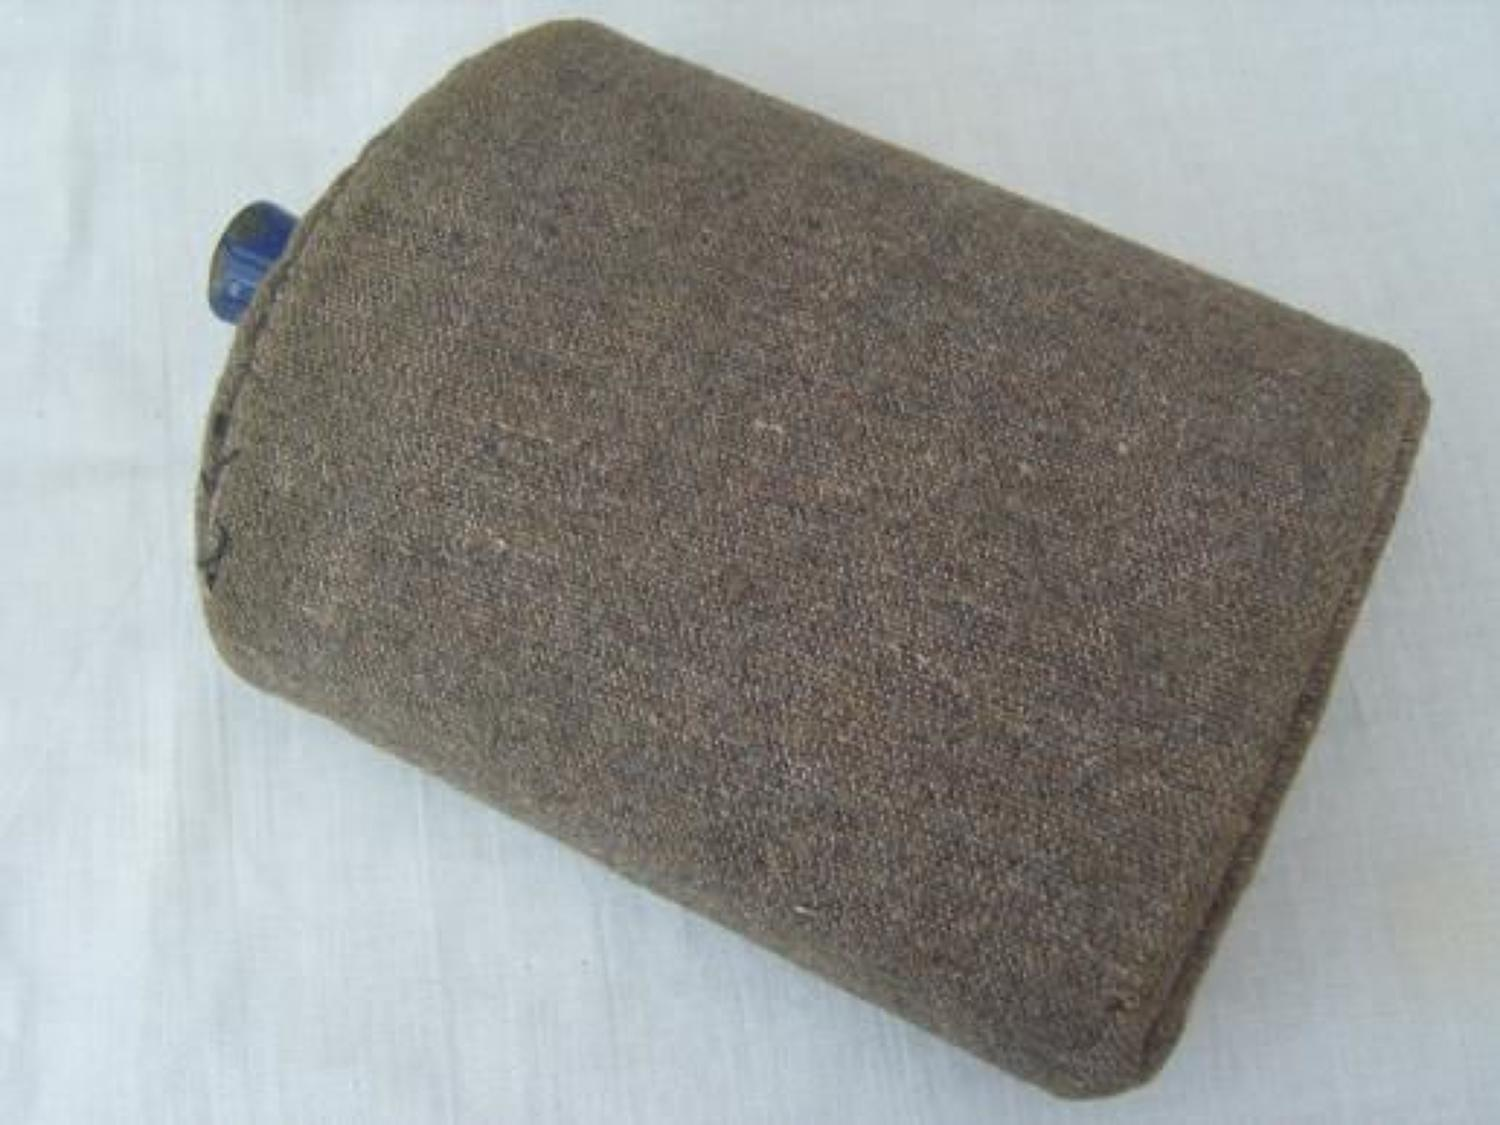 WW1 British Water Bottle and wool cover.